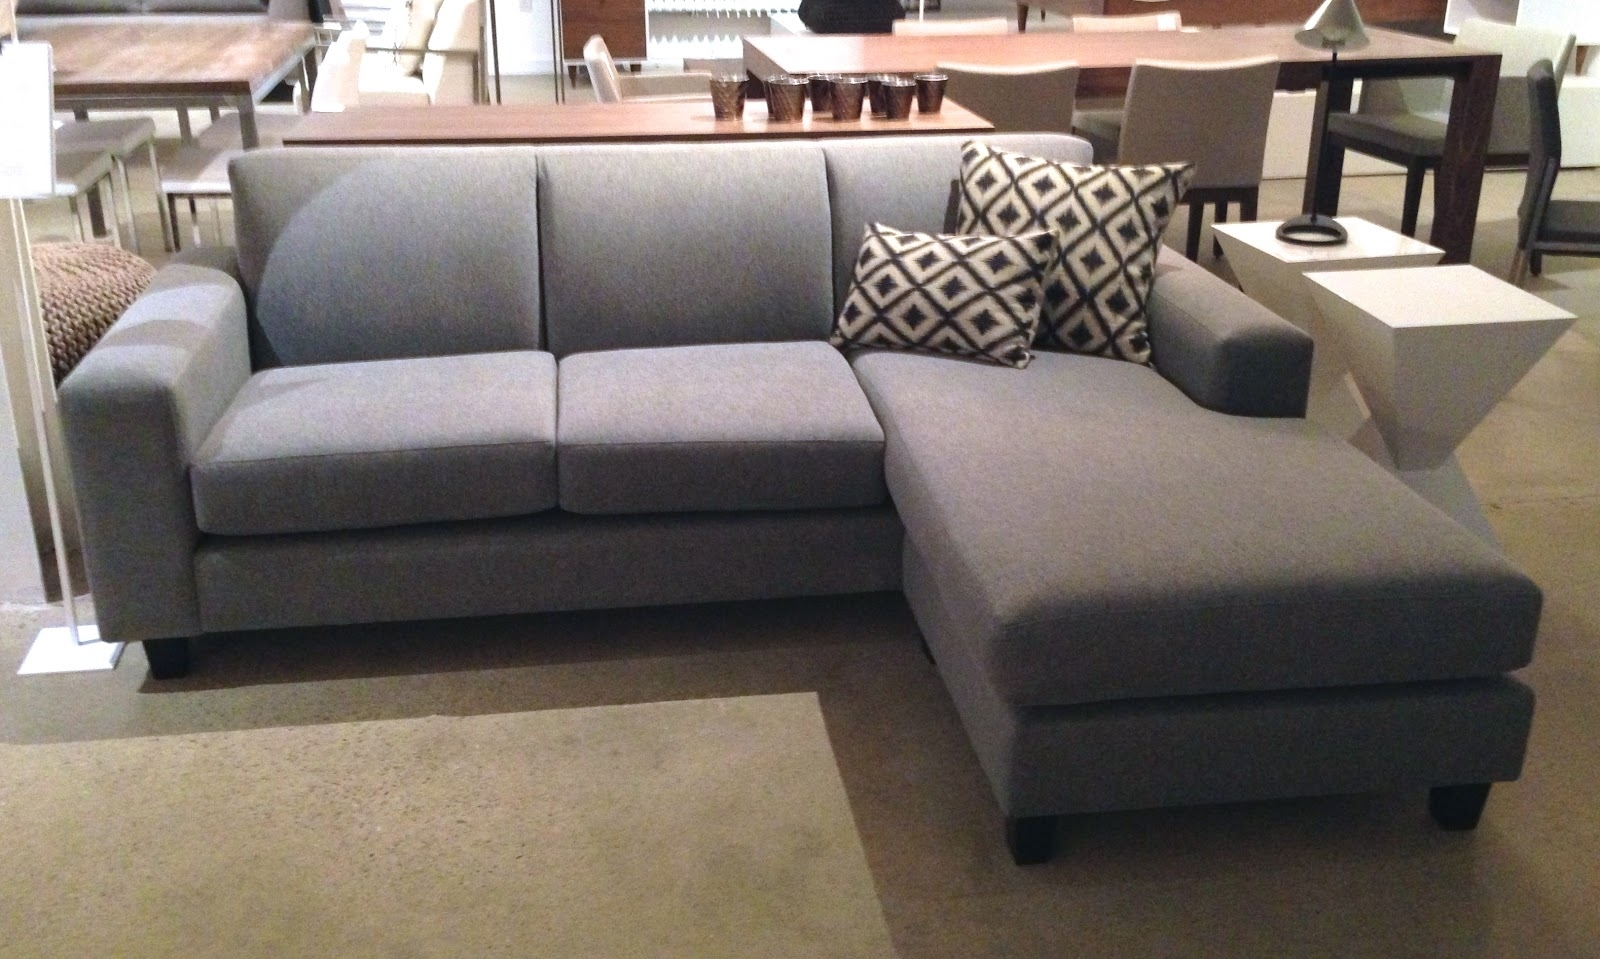 Modular Sectional Sofa Canada | Functionalities Intended For Sectional Sofas In Canada (Image 6 of 10)